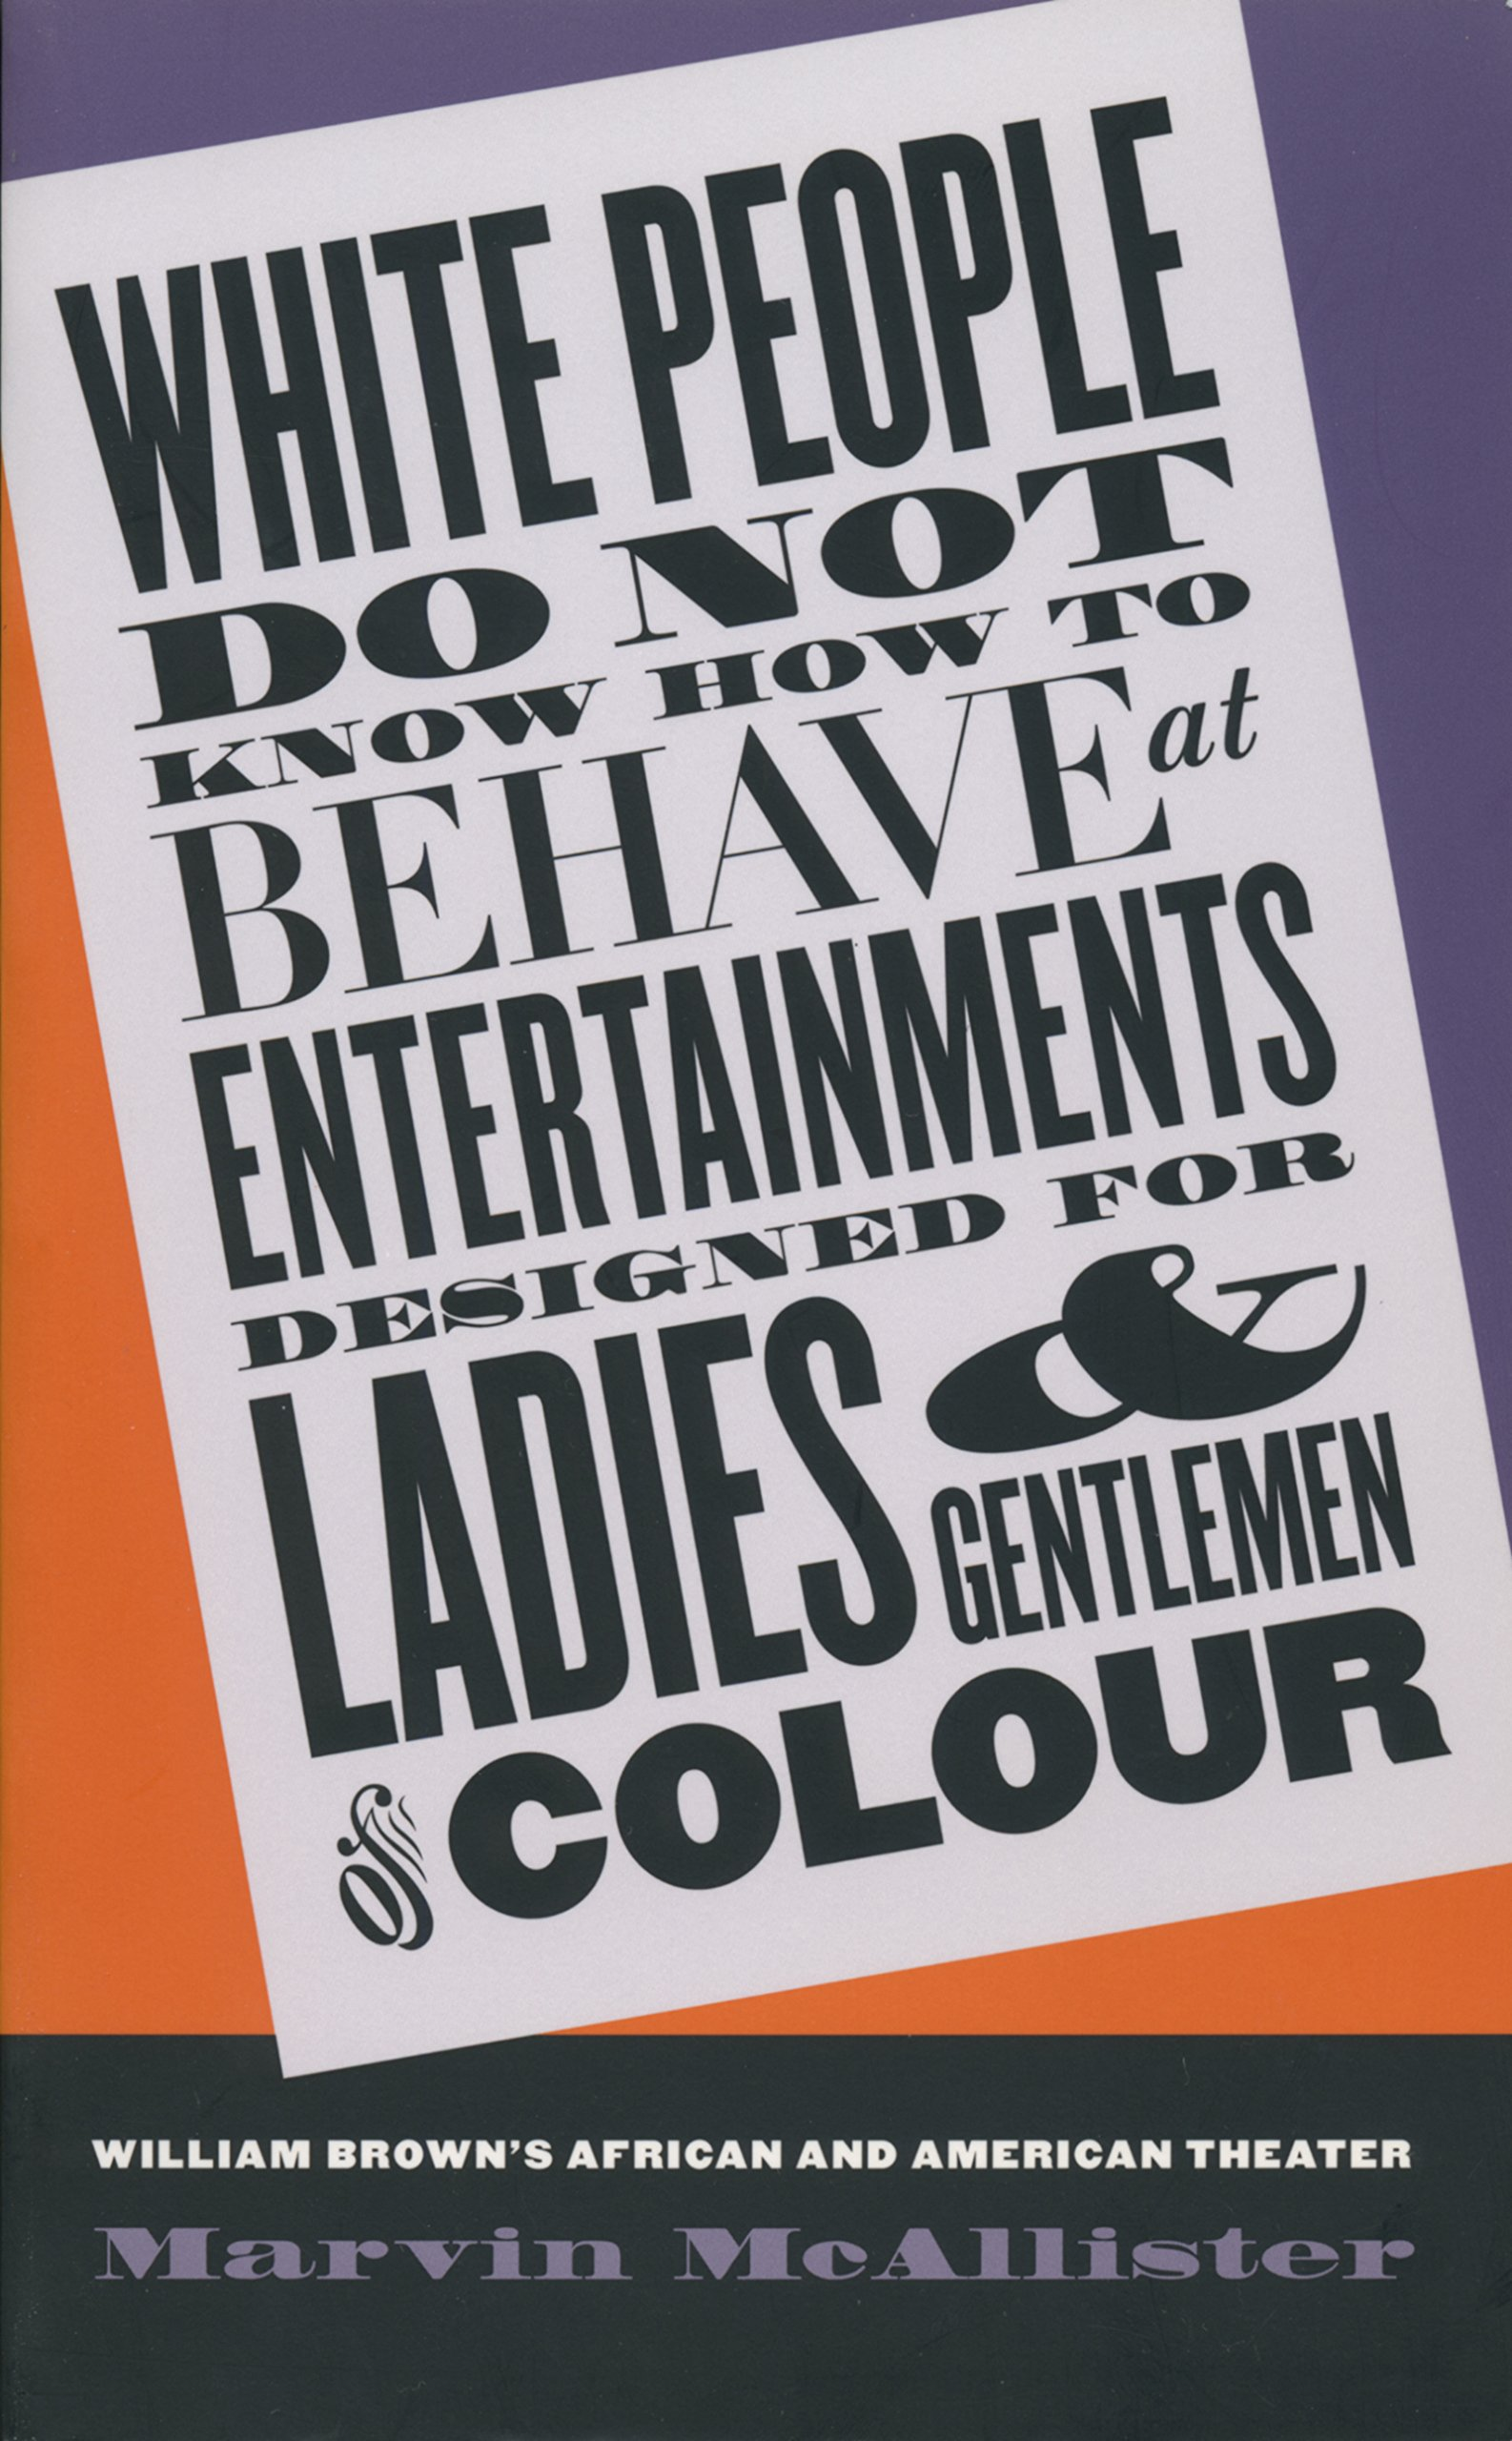 White people do not know how to behave at entertainments designed white people do not know how to behave at entertainments designed for ladies and gentlemen of colour william browns african and american theater marvin malvernweather Images